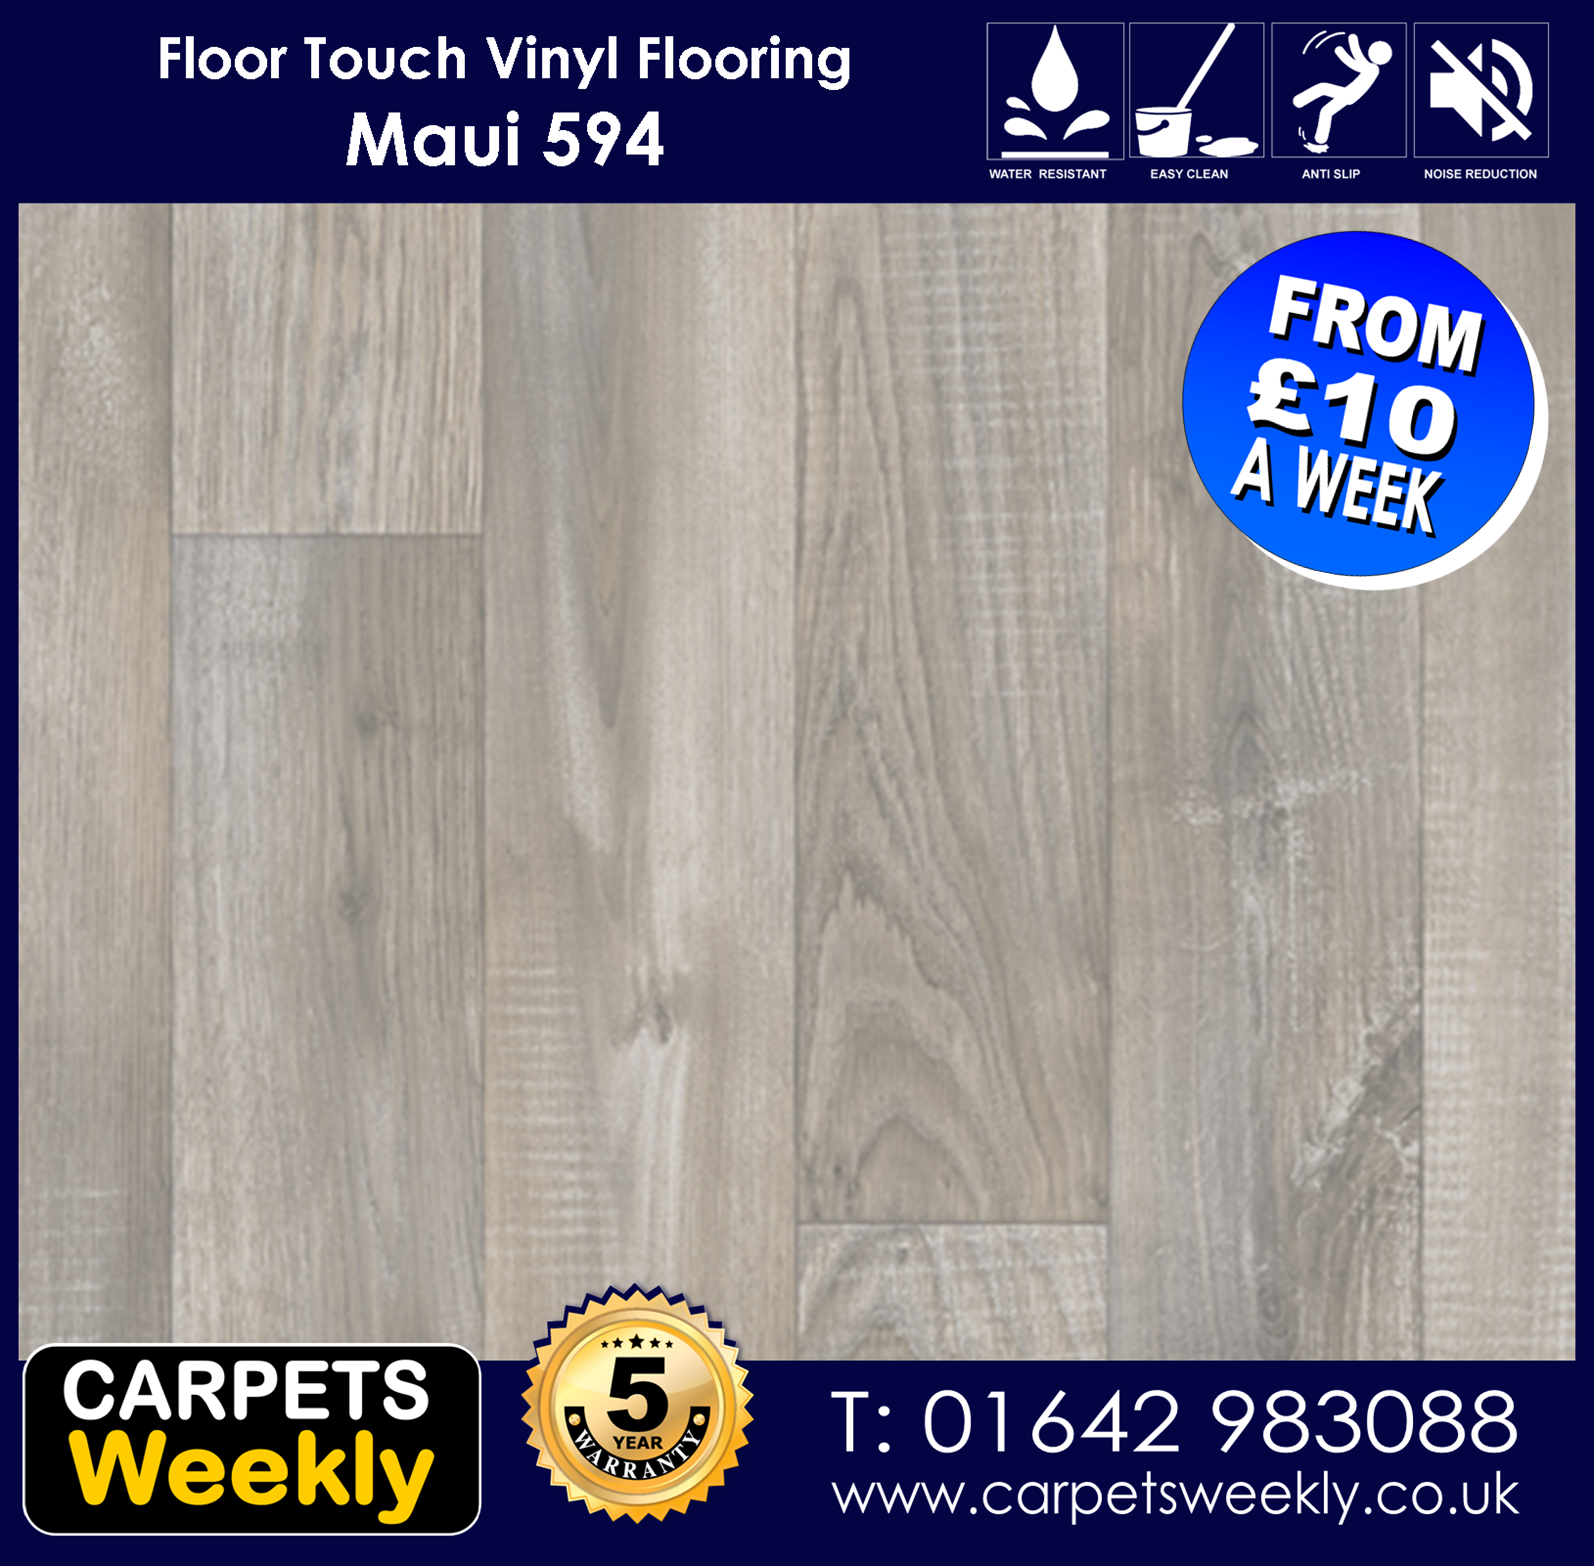 Maui 594 Vinyl Flooring by Floor Touch from Carpets Weekly